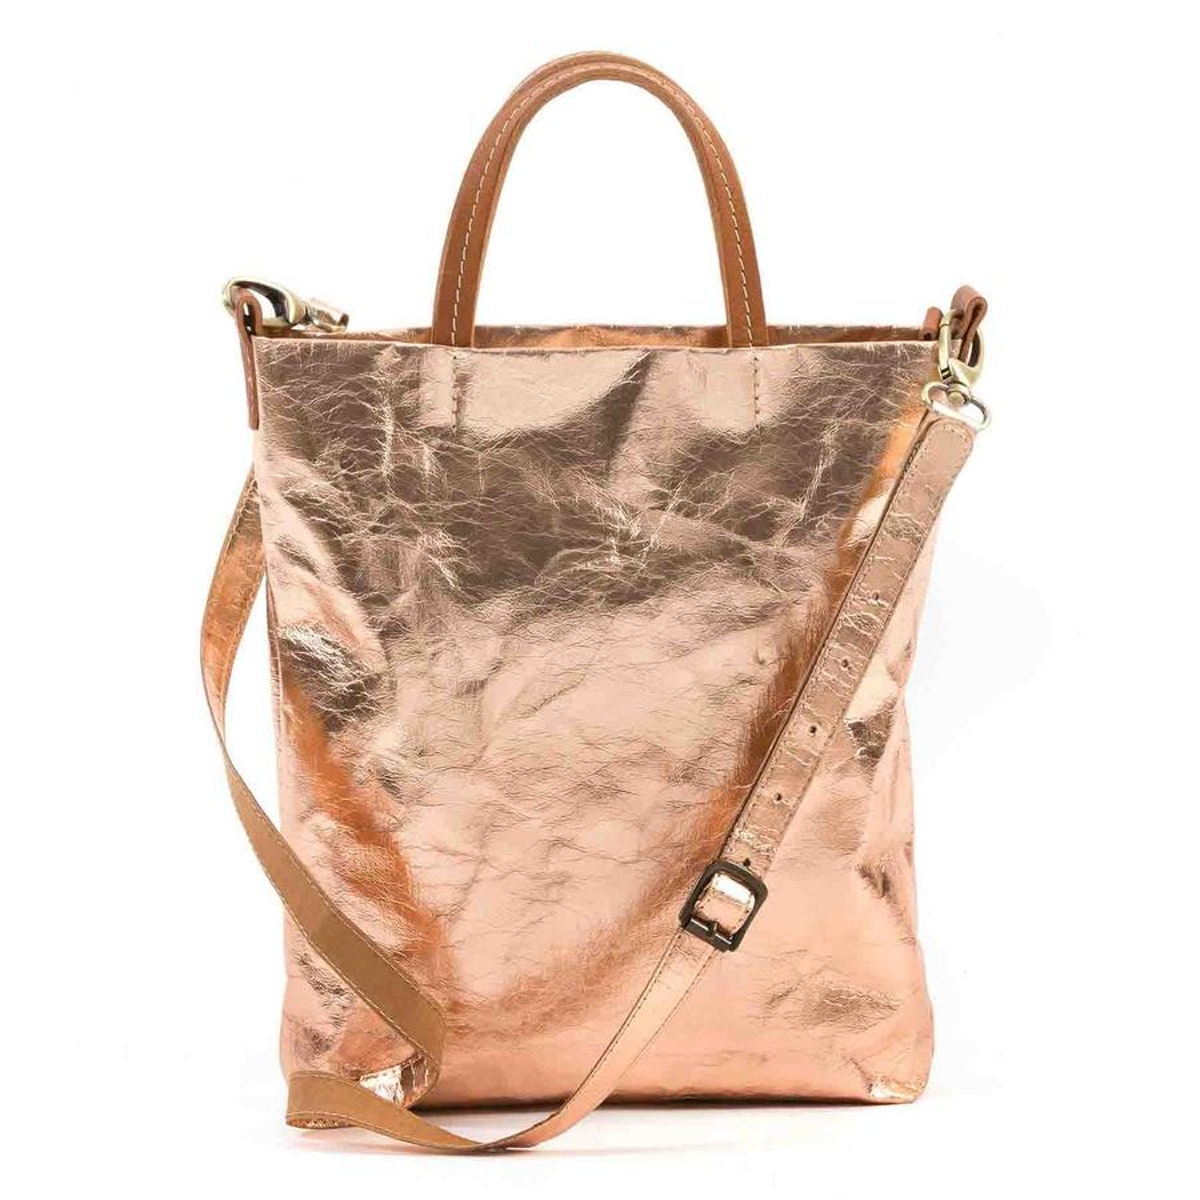 Uashmama Otti Handbag Metallic Rose